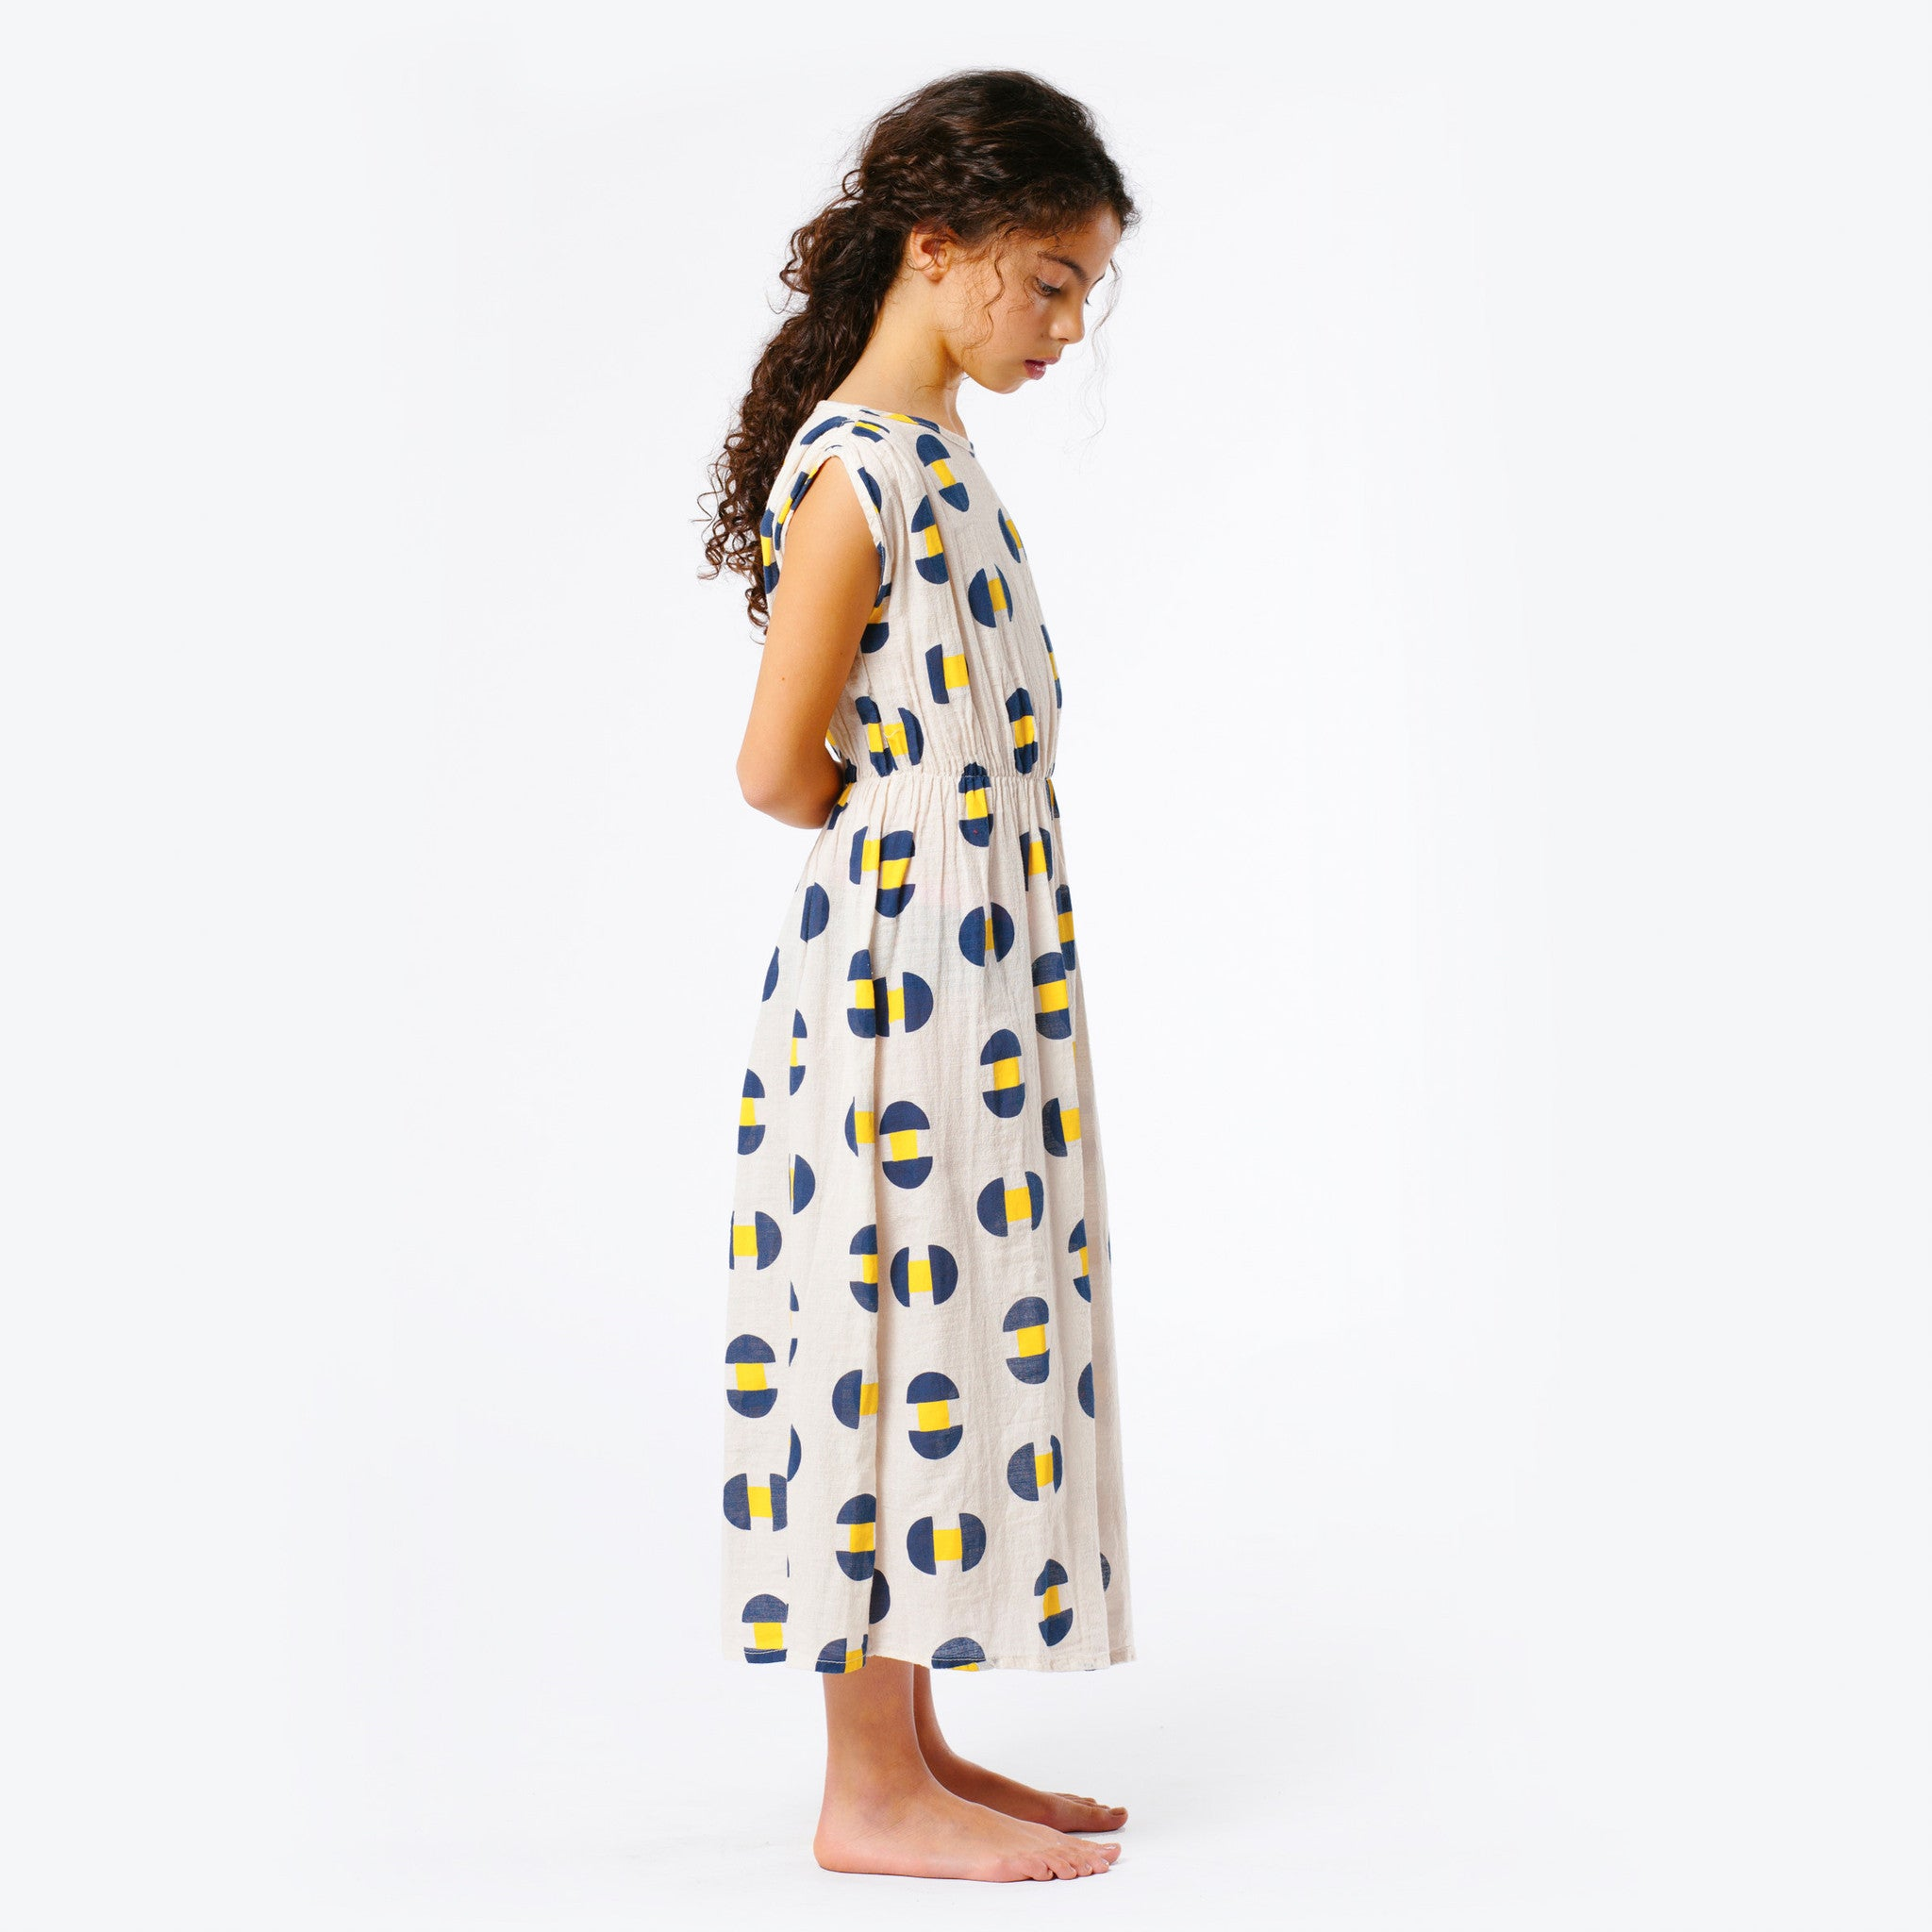 The Animals Observatory Marten Girl's Dress in Geometric | BIEN BIEN